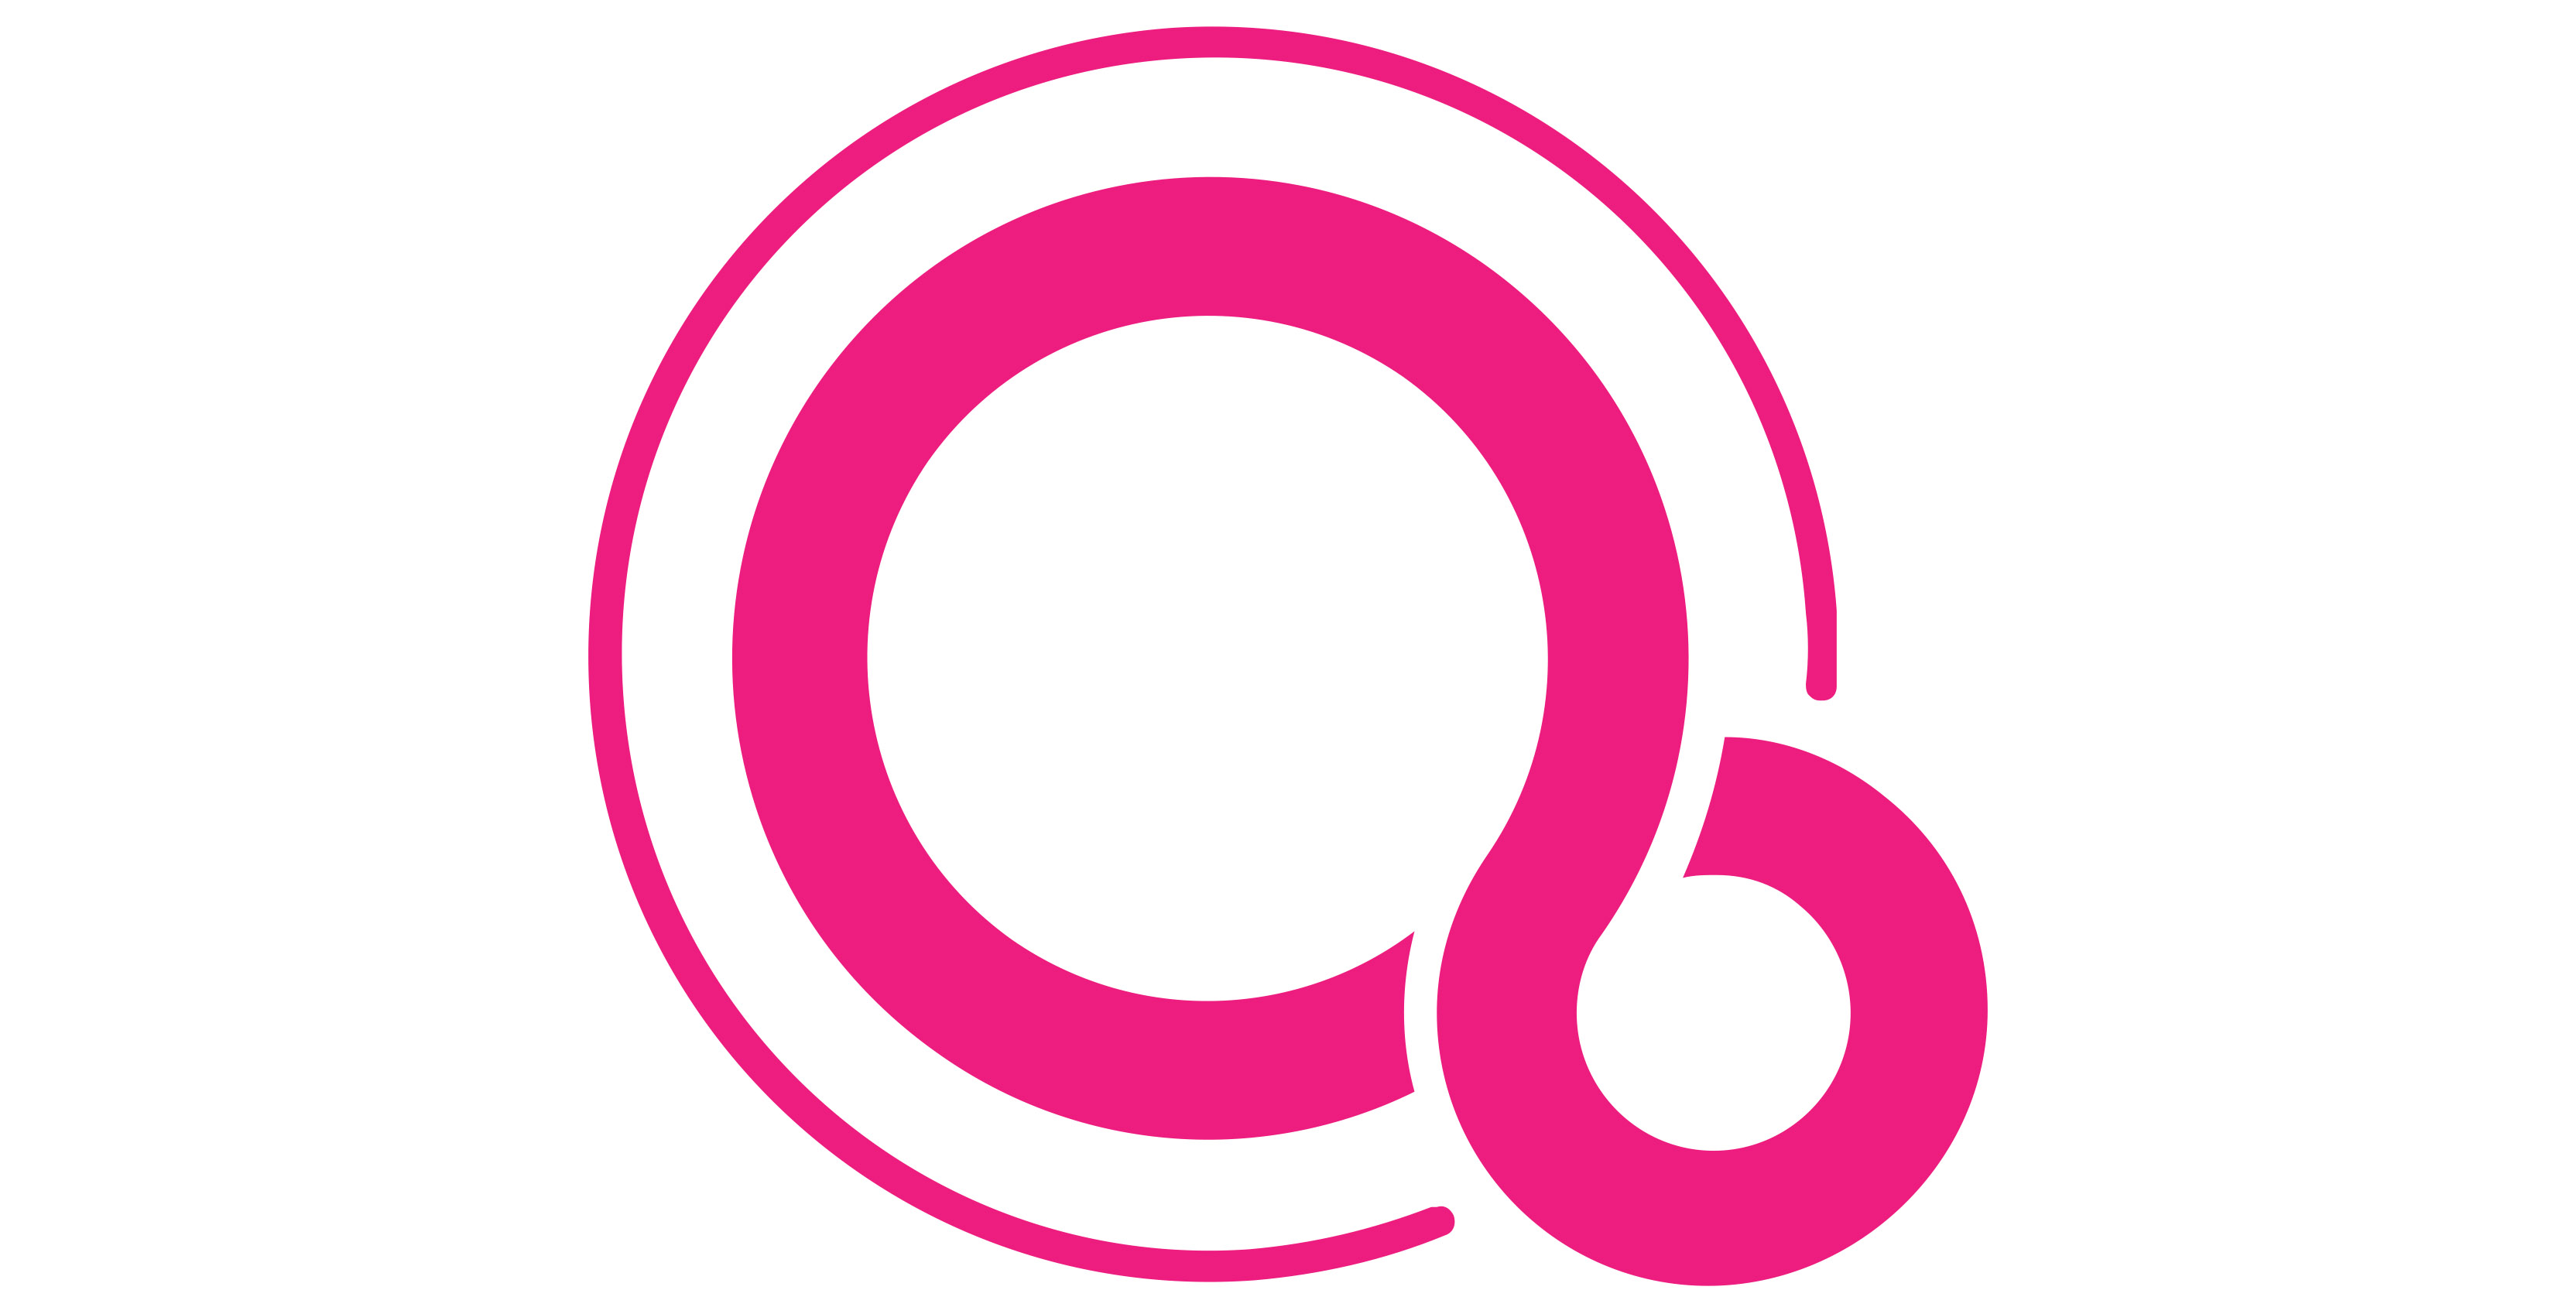 Google's Fuchsia OS will likely support Android apps whenever it materializes